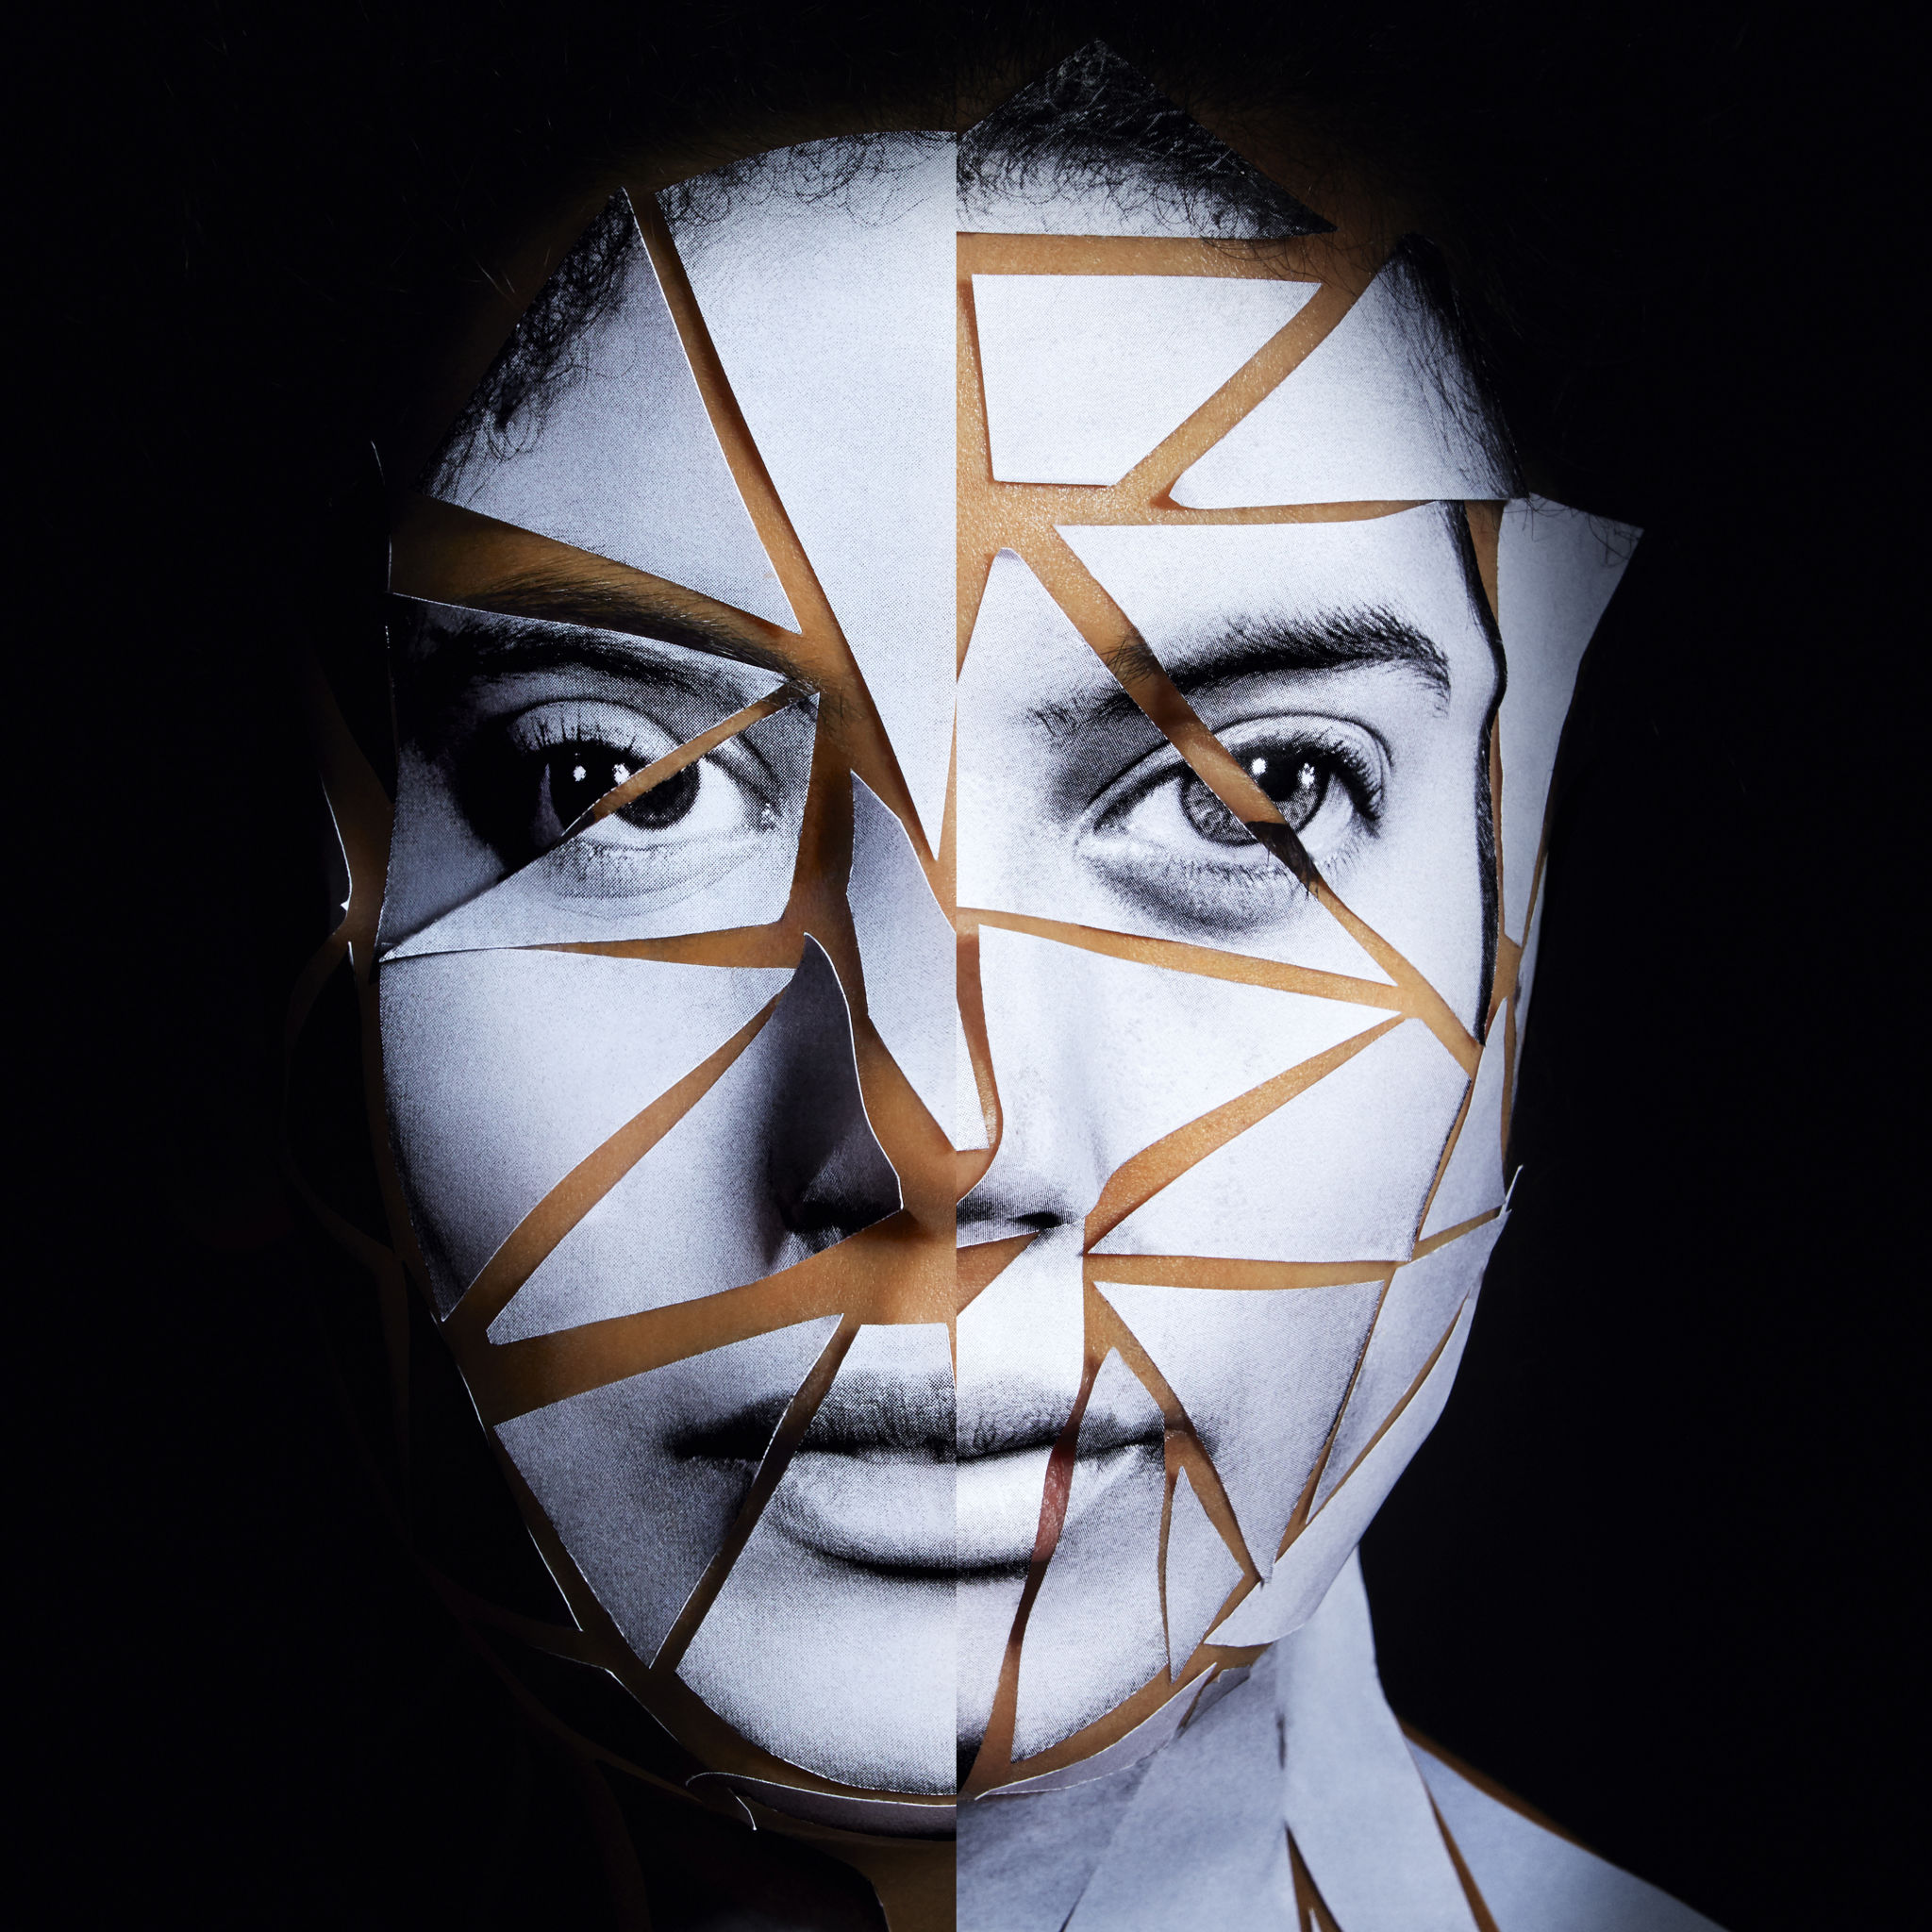 Track of the Day #1073: Ibeyi (feat. Kamasi Washington) – Deathless